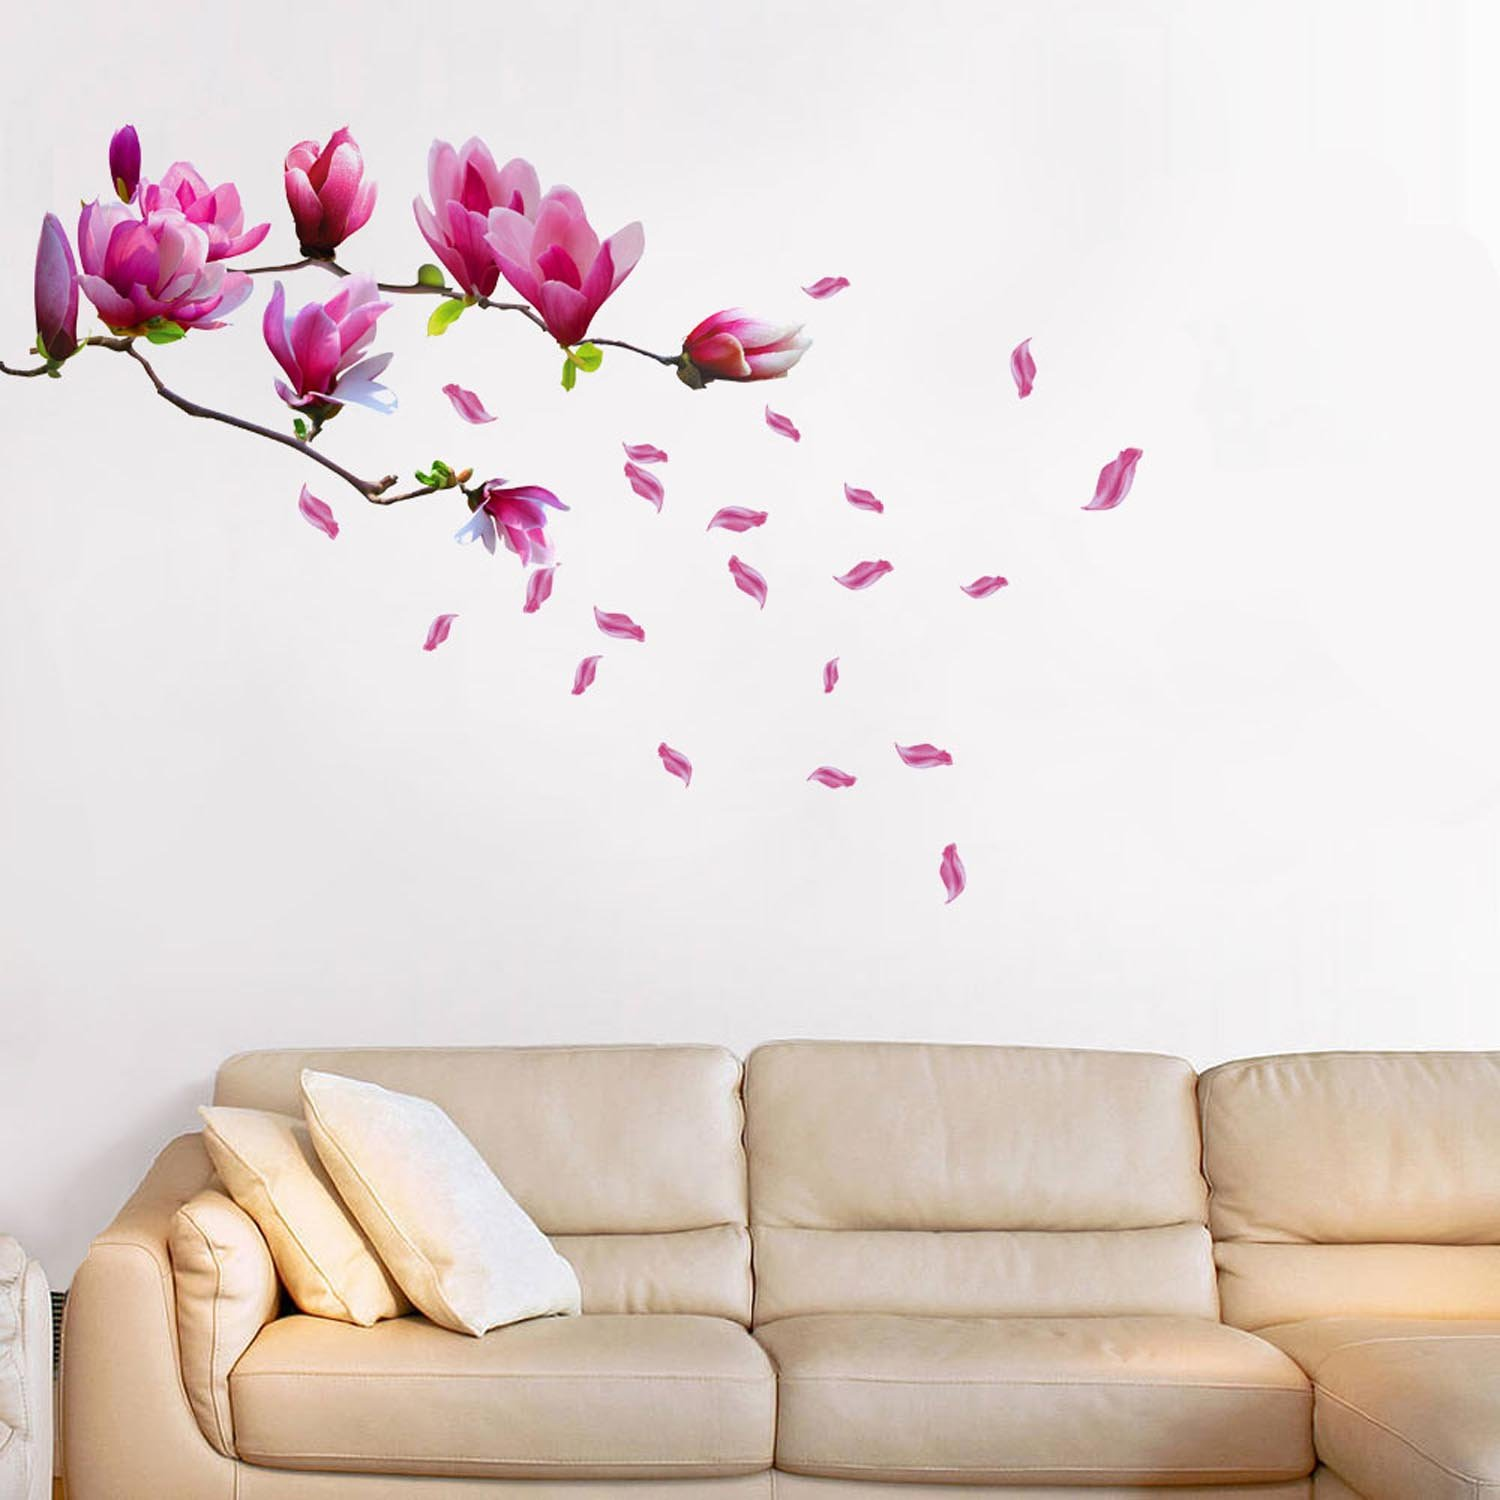 Walplus wall stickers giant magnolia flowers removable self walplus wall stickers giant magnolia flowers removable self adhesive mural art decals vinyl home decoration diy living bedroom office dcor wallpaper kids amipublicfo Gallery